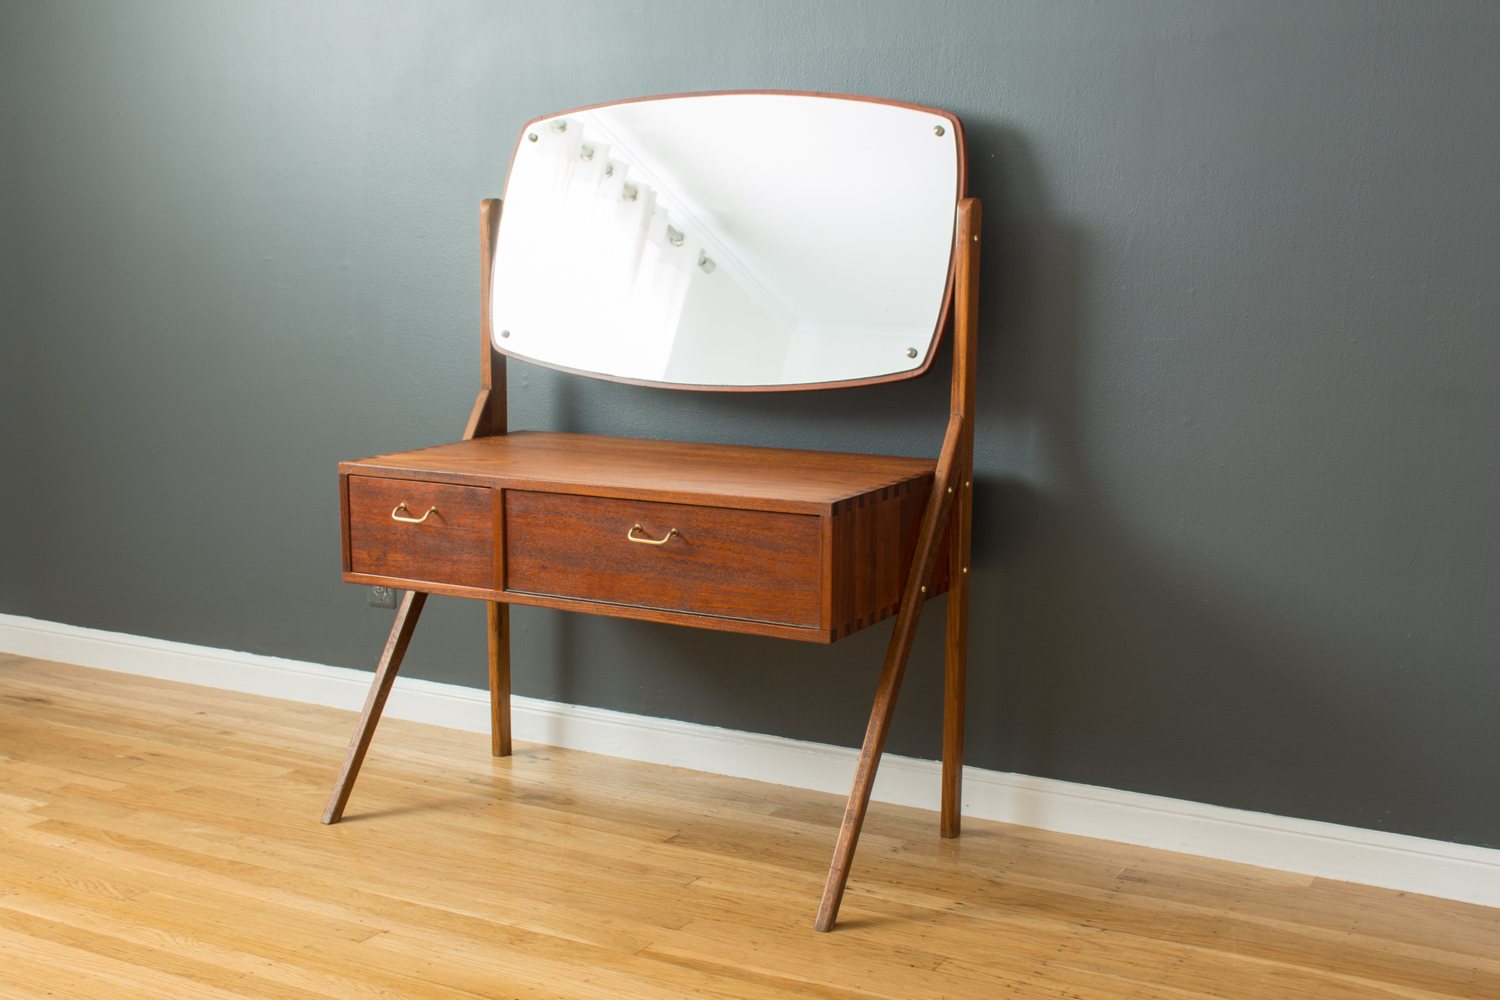 Copy of Danish Modern Vanity by Torben Strandgaard